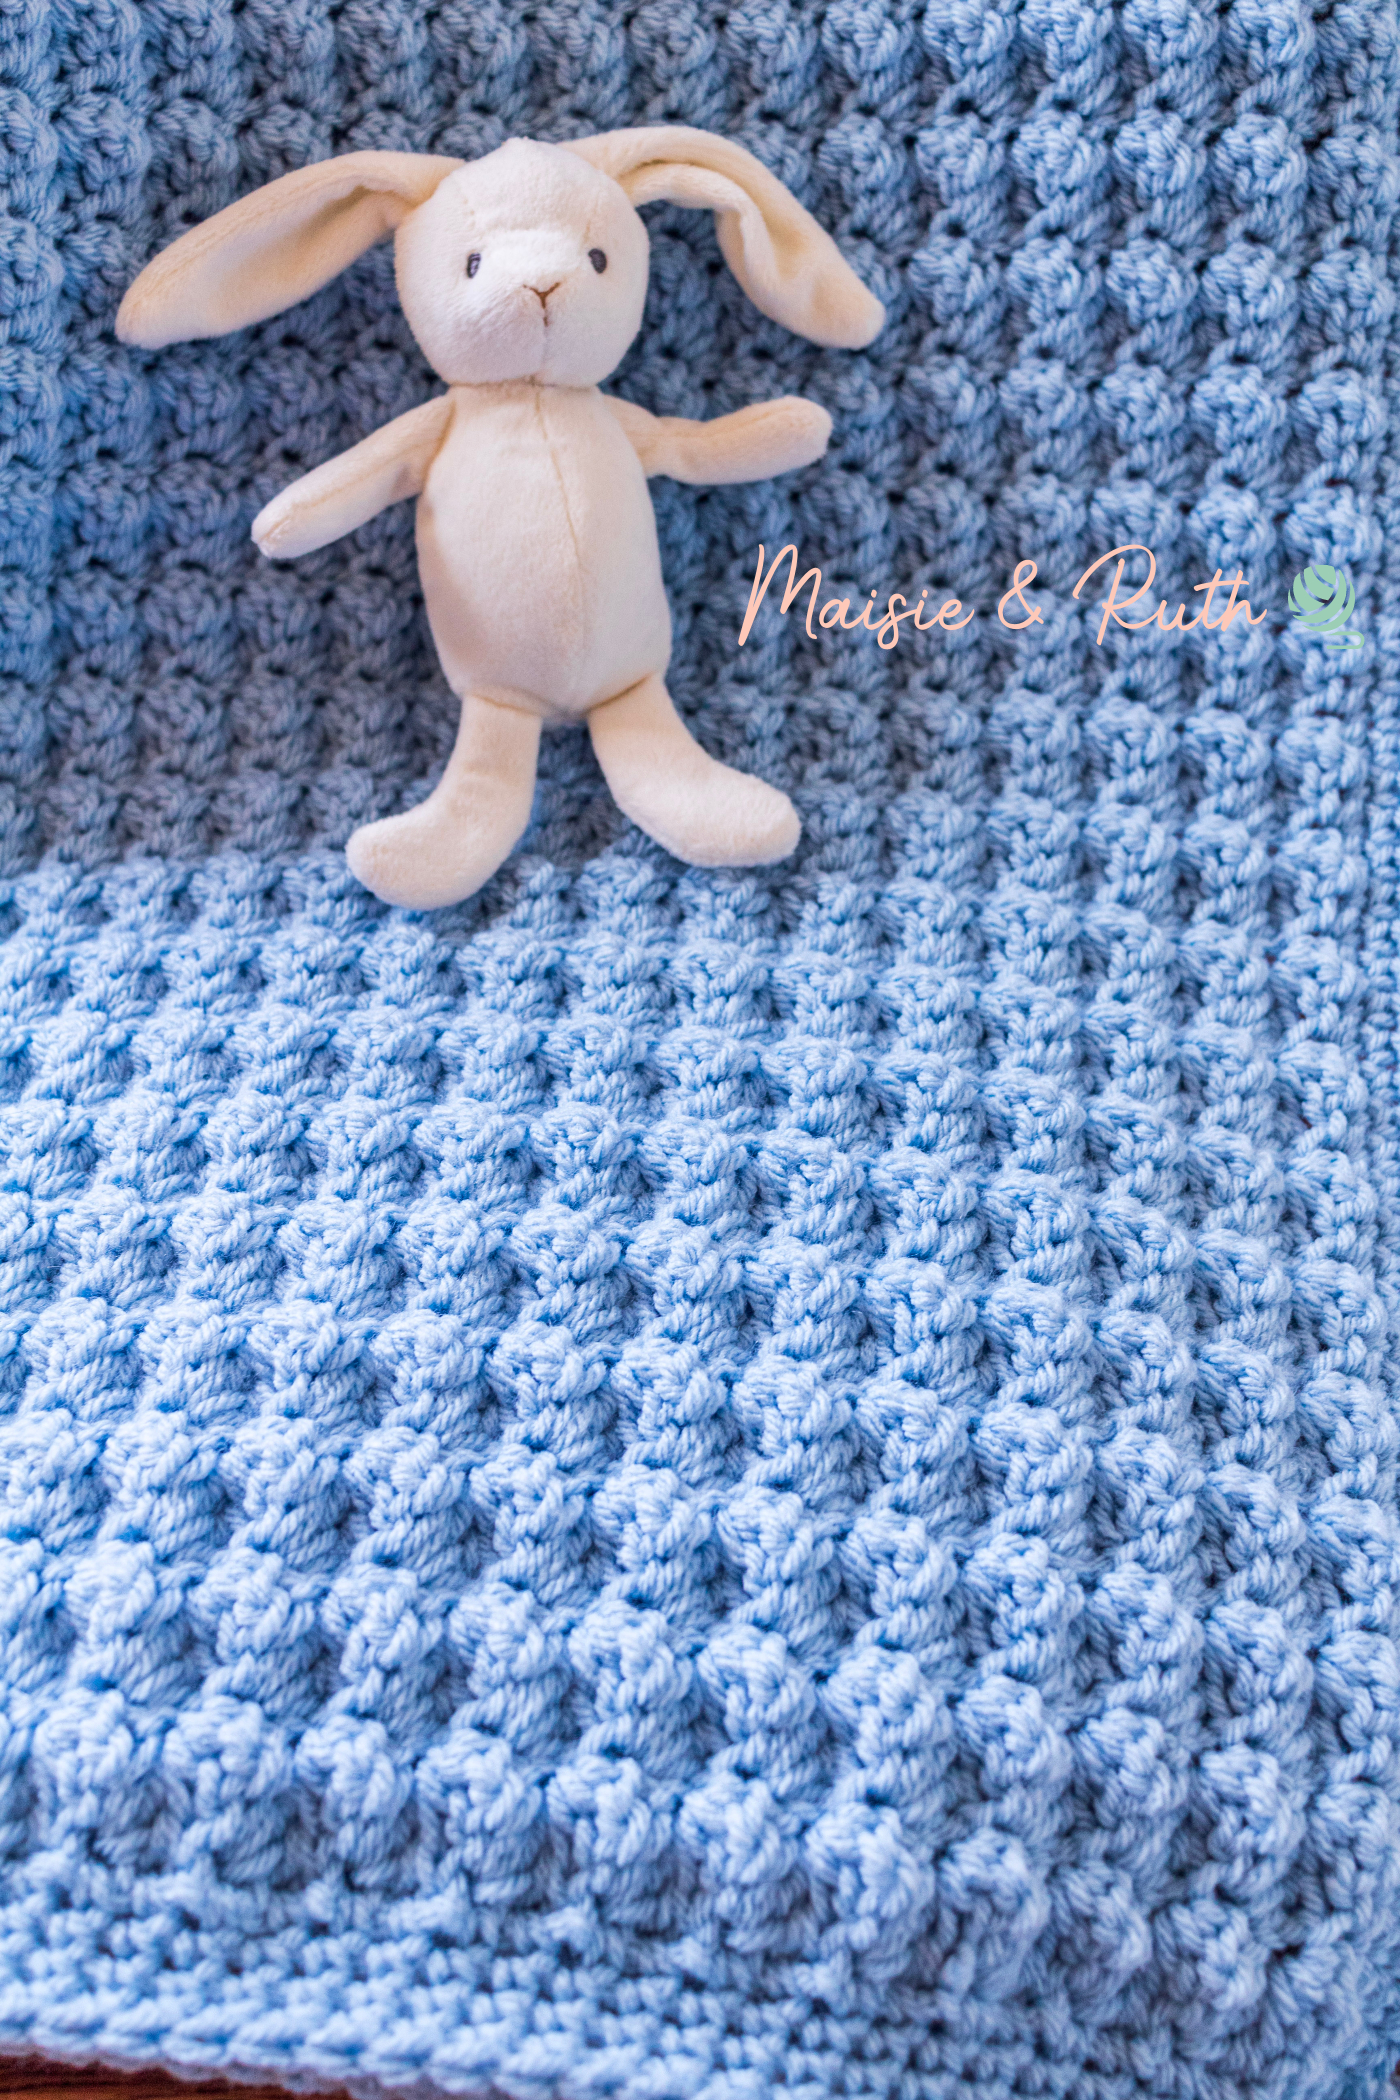 Easy Crochet Baby Blanket Close Up of Stitches